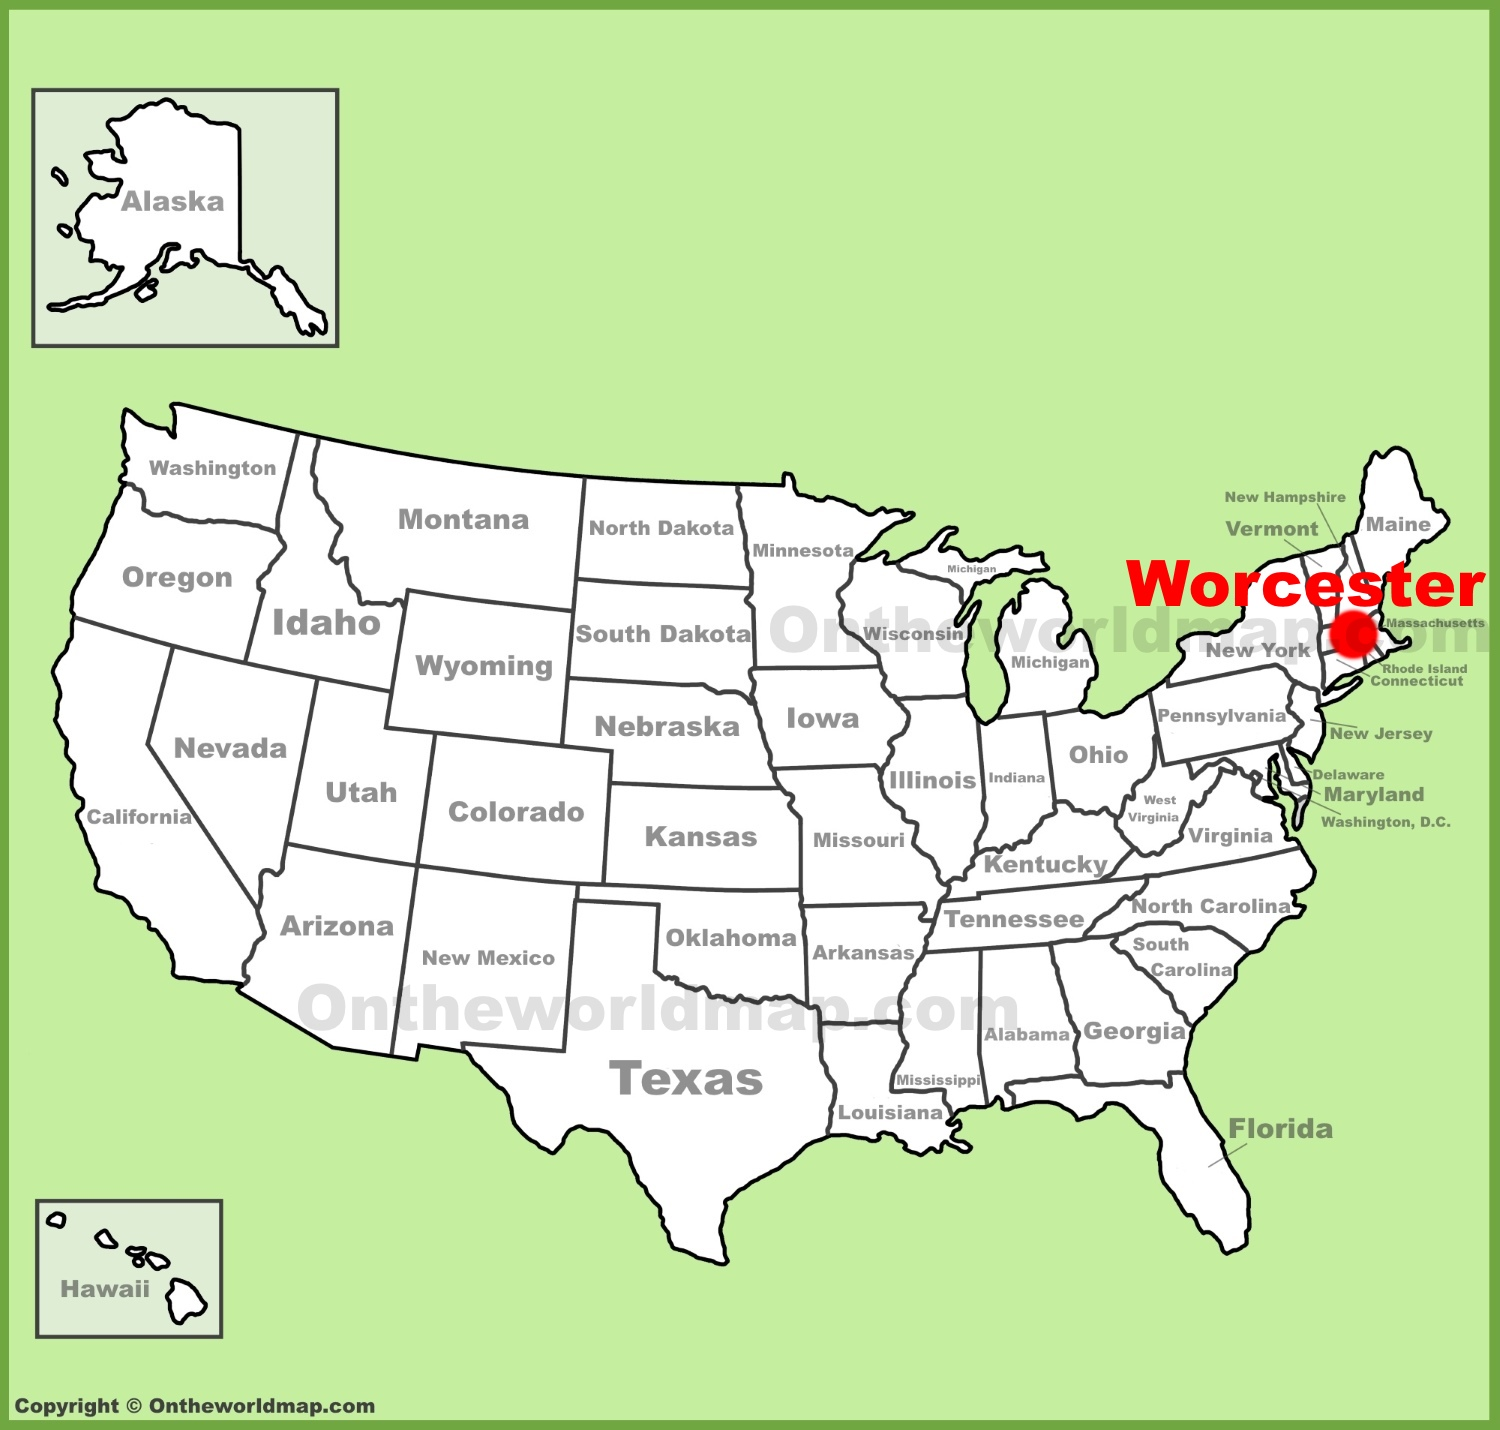 Worcester location on the US Map